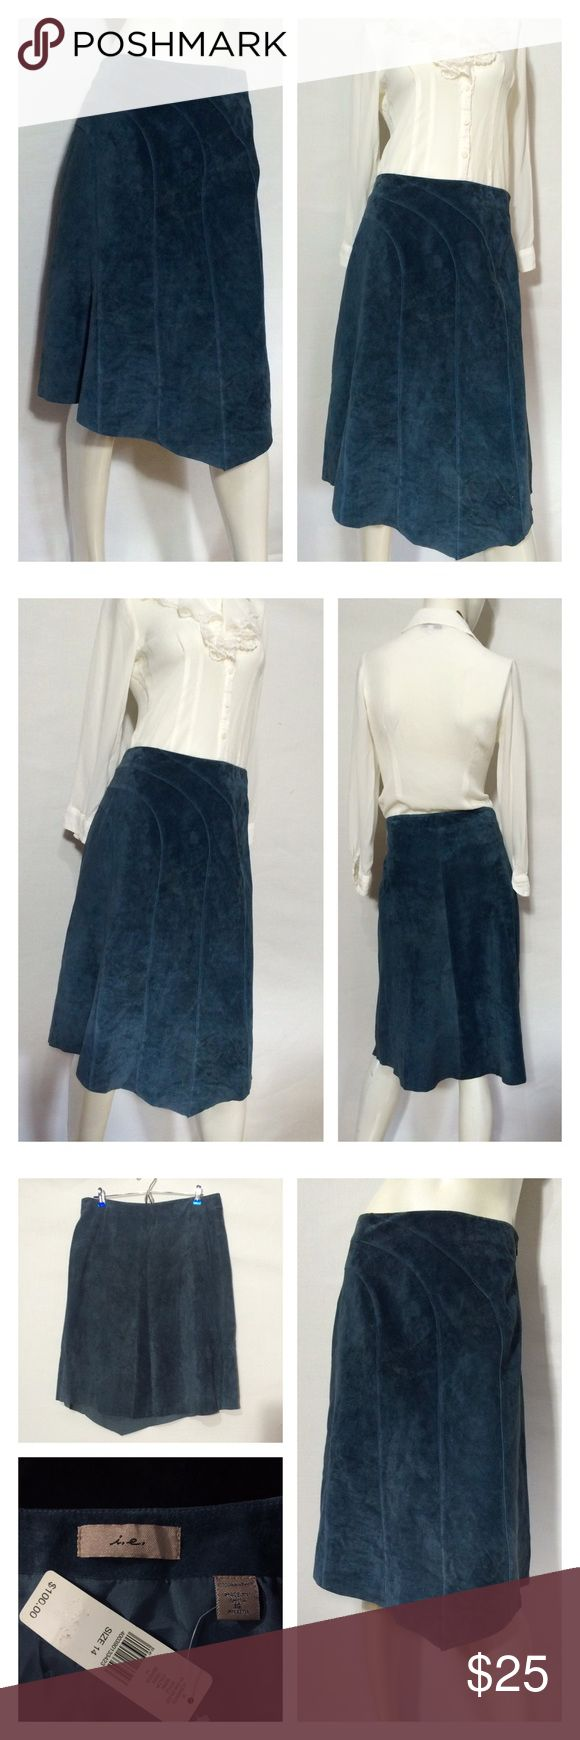 "Suede Slate Blue Leather A line Skirt Brand New Slate blue soft leather/suede A-line skirt. In excellent condition and tags still attached.  Absolutely gorgeous stitching detail, fully lined.  I adjusted it to fit the mannequin but this is a U.S size 14 - Measurements below of item laid flat:  Waist: 17.5"" Hips: 22.5"" Length: 26"" Element Skirts A-Line or Full"